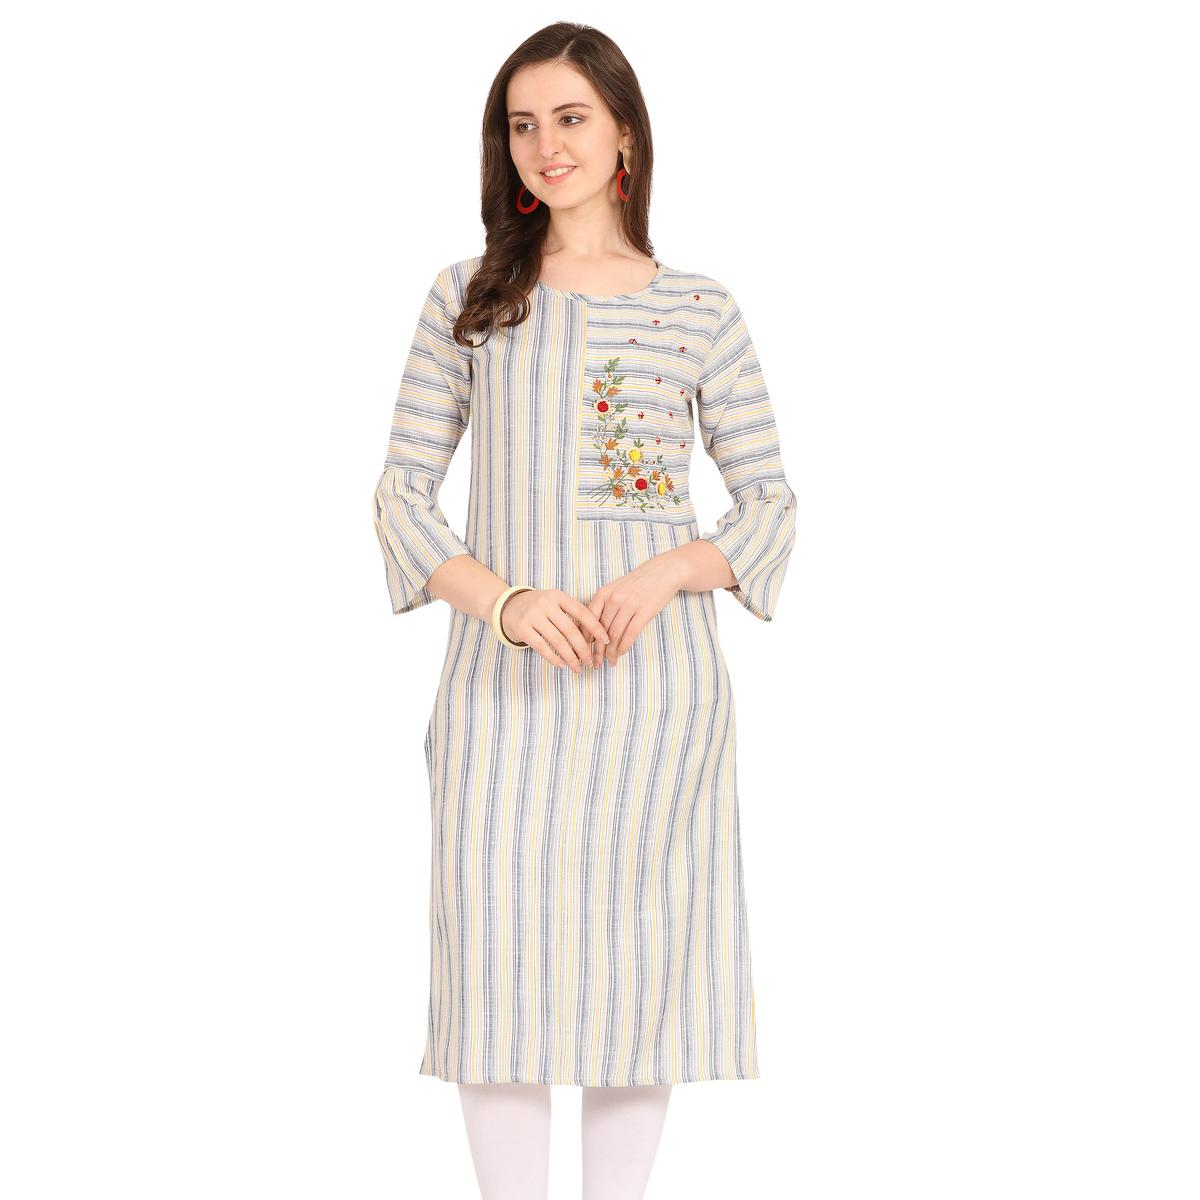 Desirable Off White-Yellow Colored Party Wear Embroidered Work Rayon Kurti